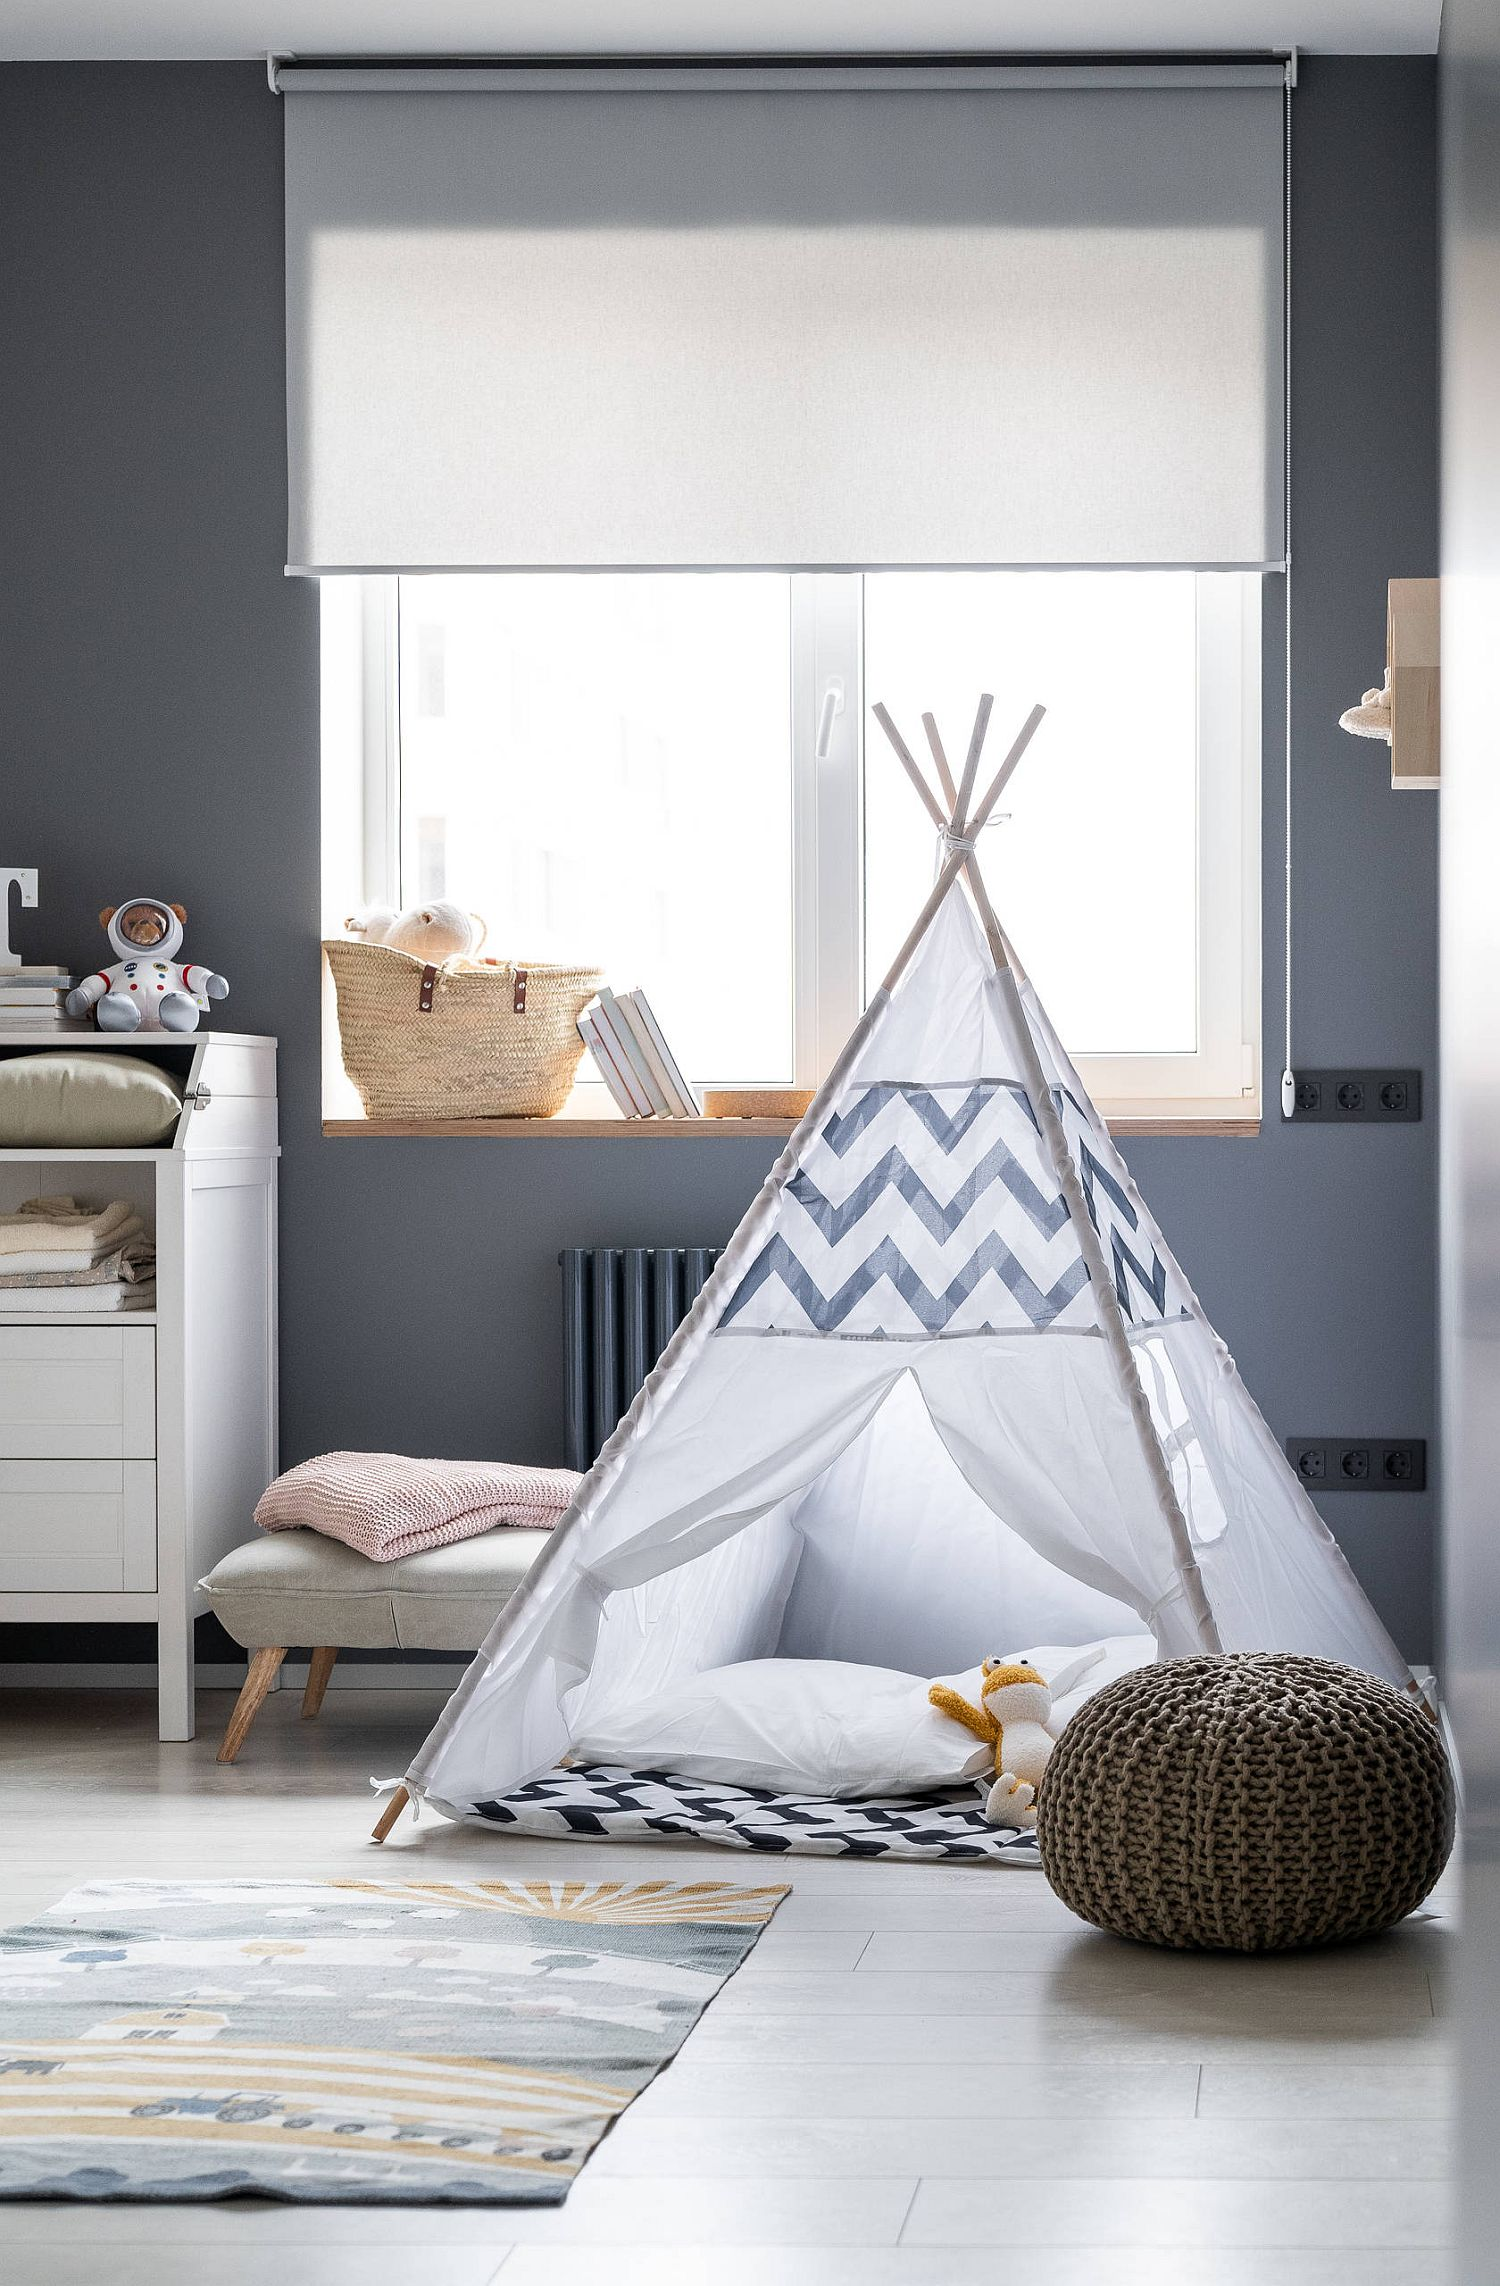 A-teepee-can-turn-pretty-much-any-space-into-a-fab-playzone-for-kids-71397